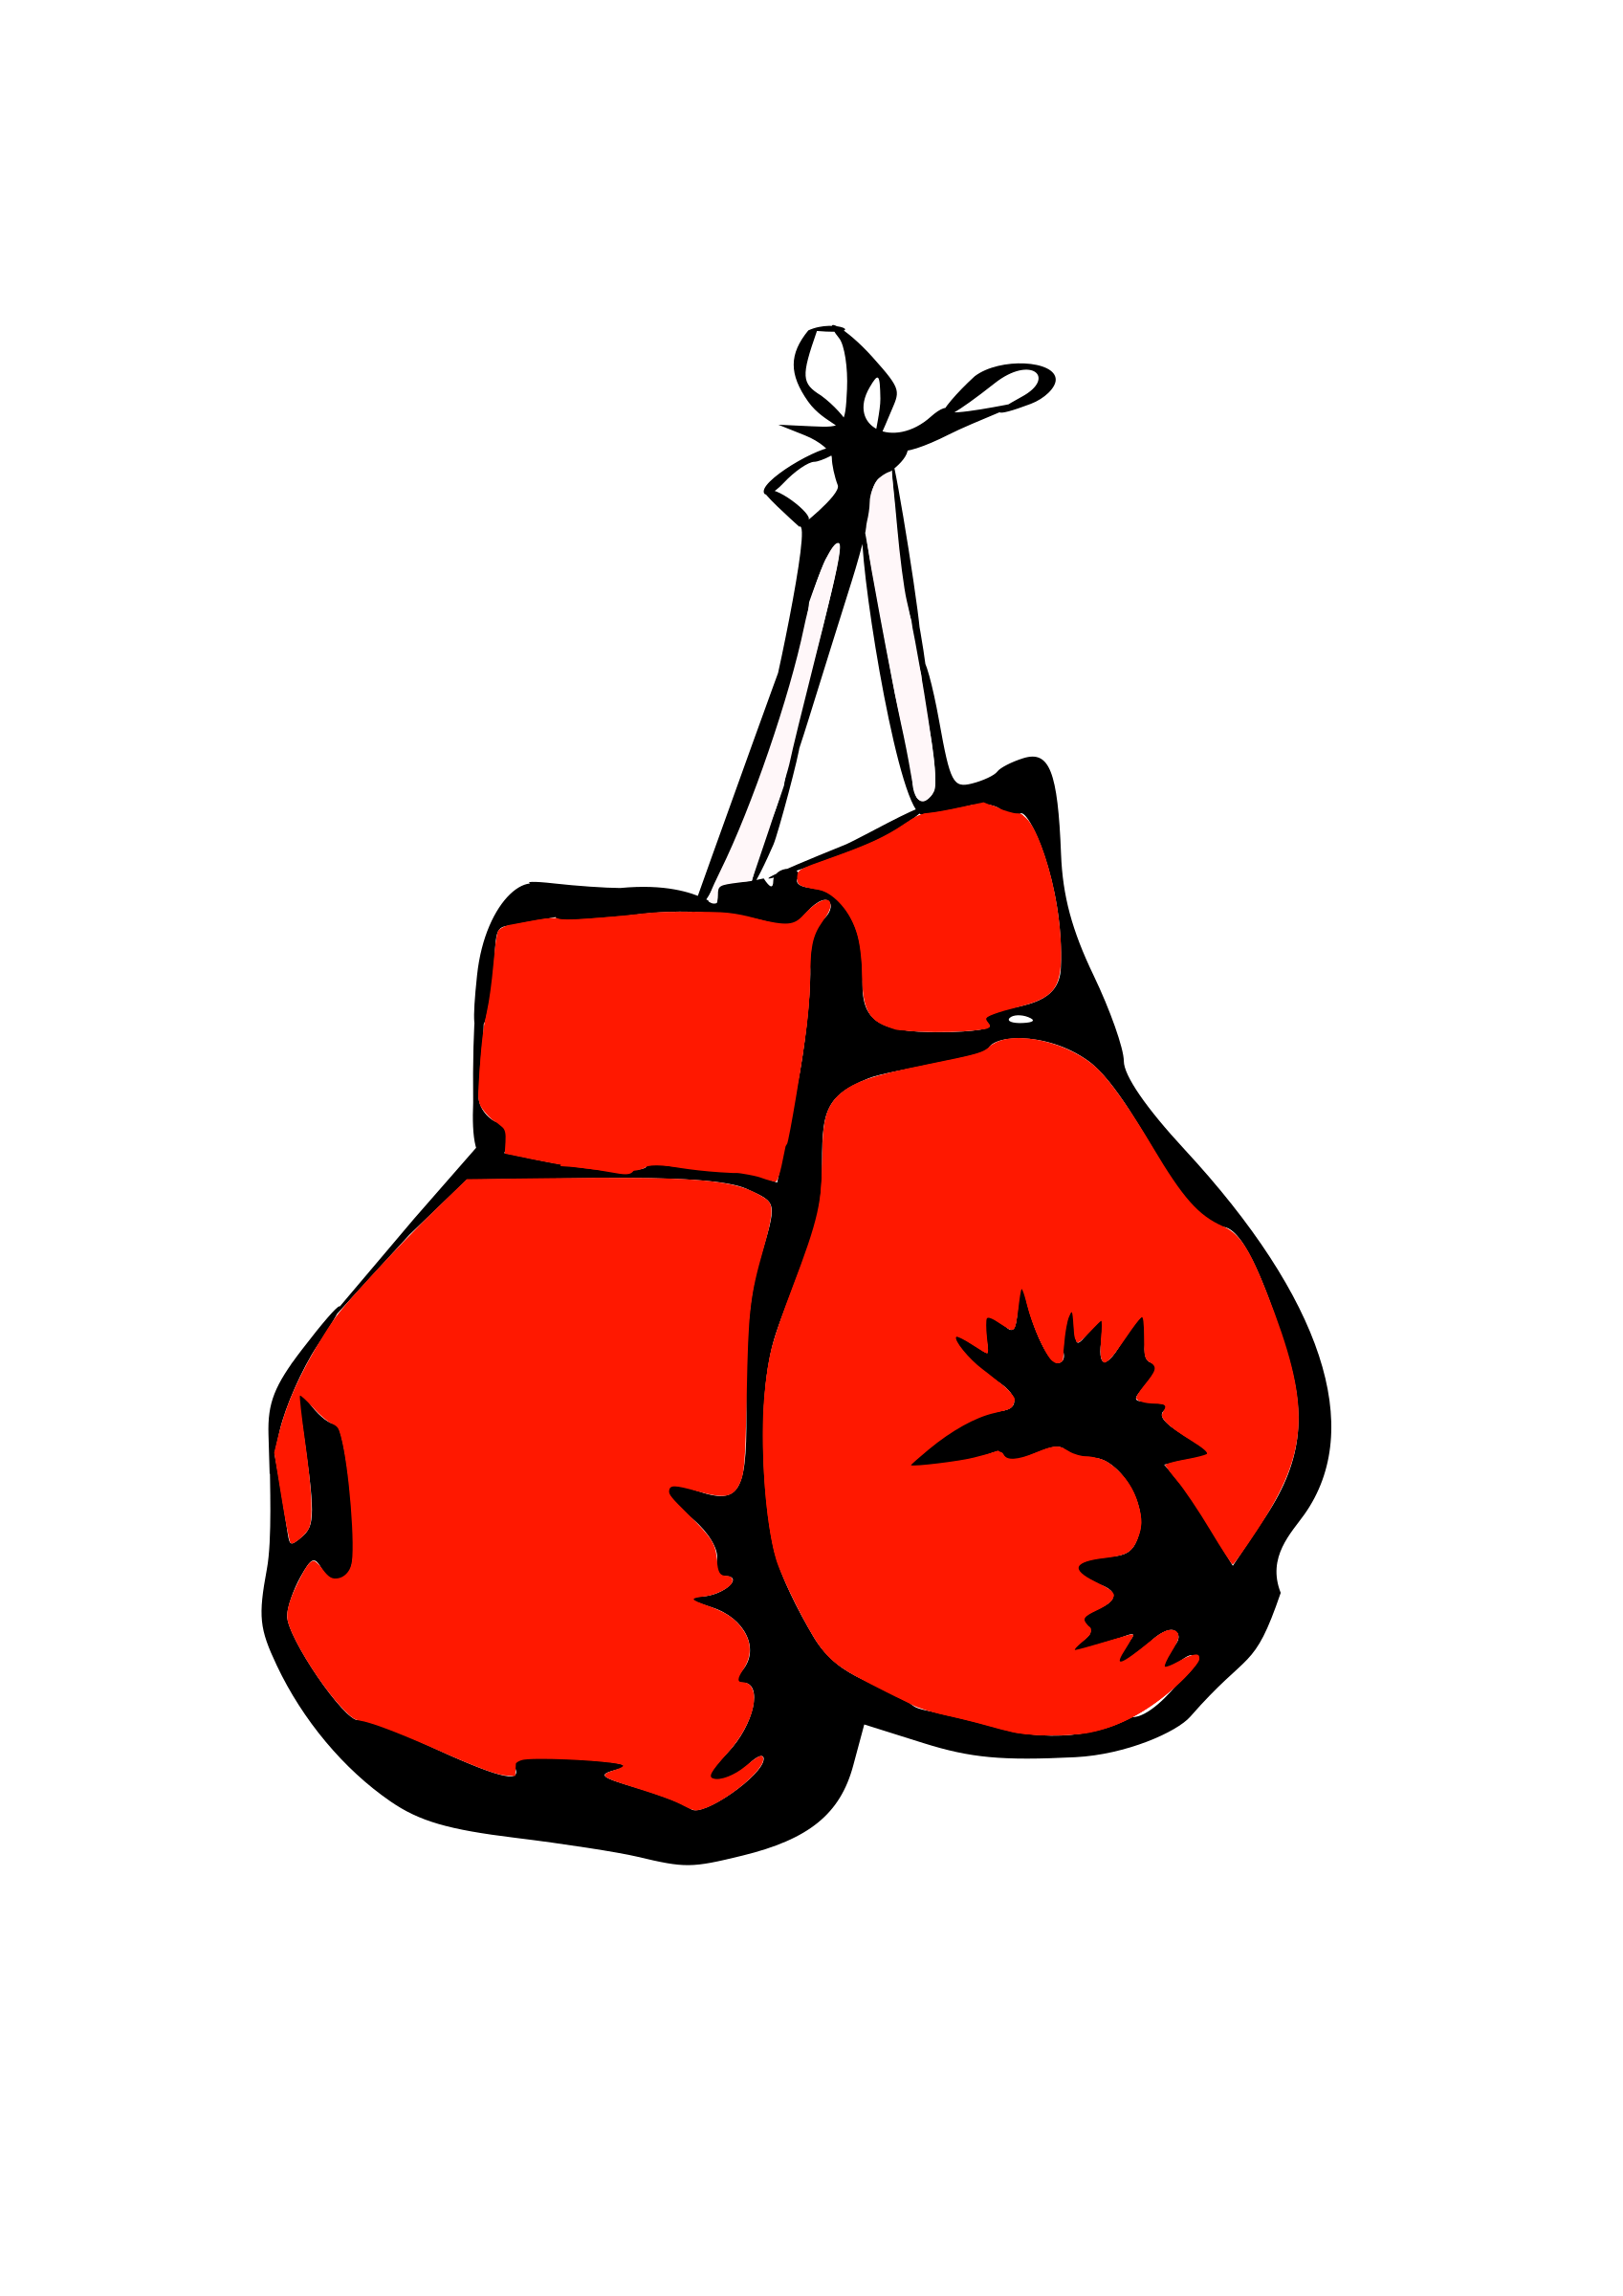 Burning boxing gloves icons. Clipart science glove